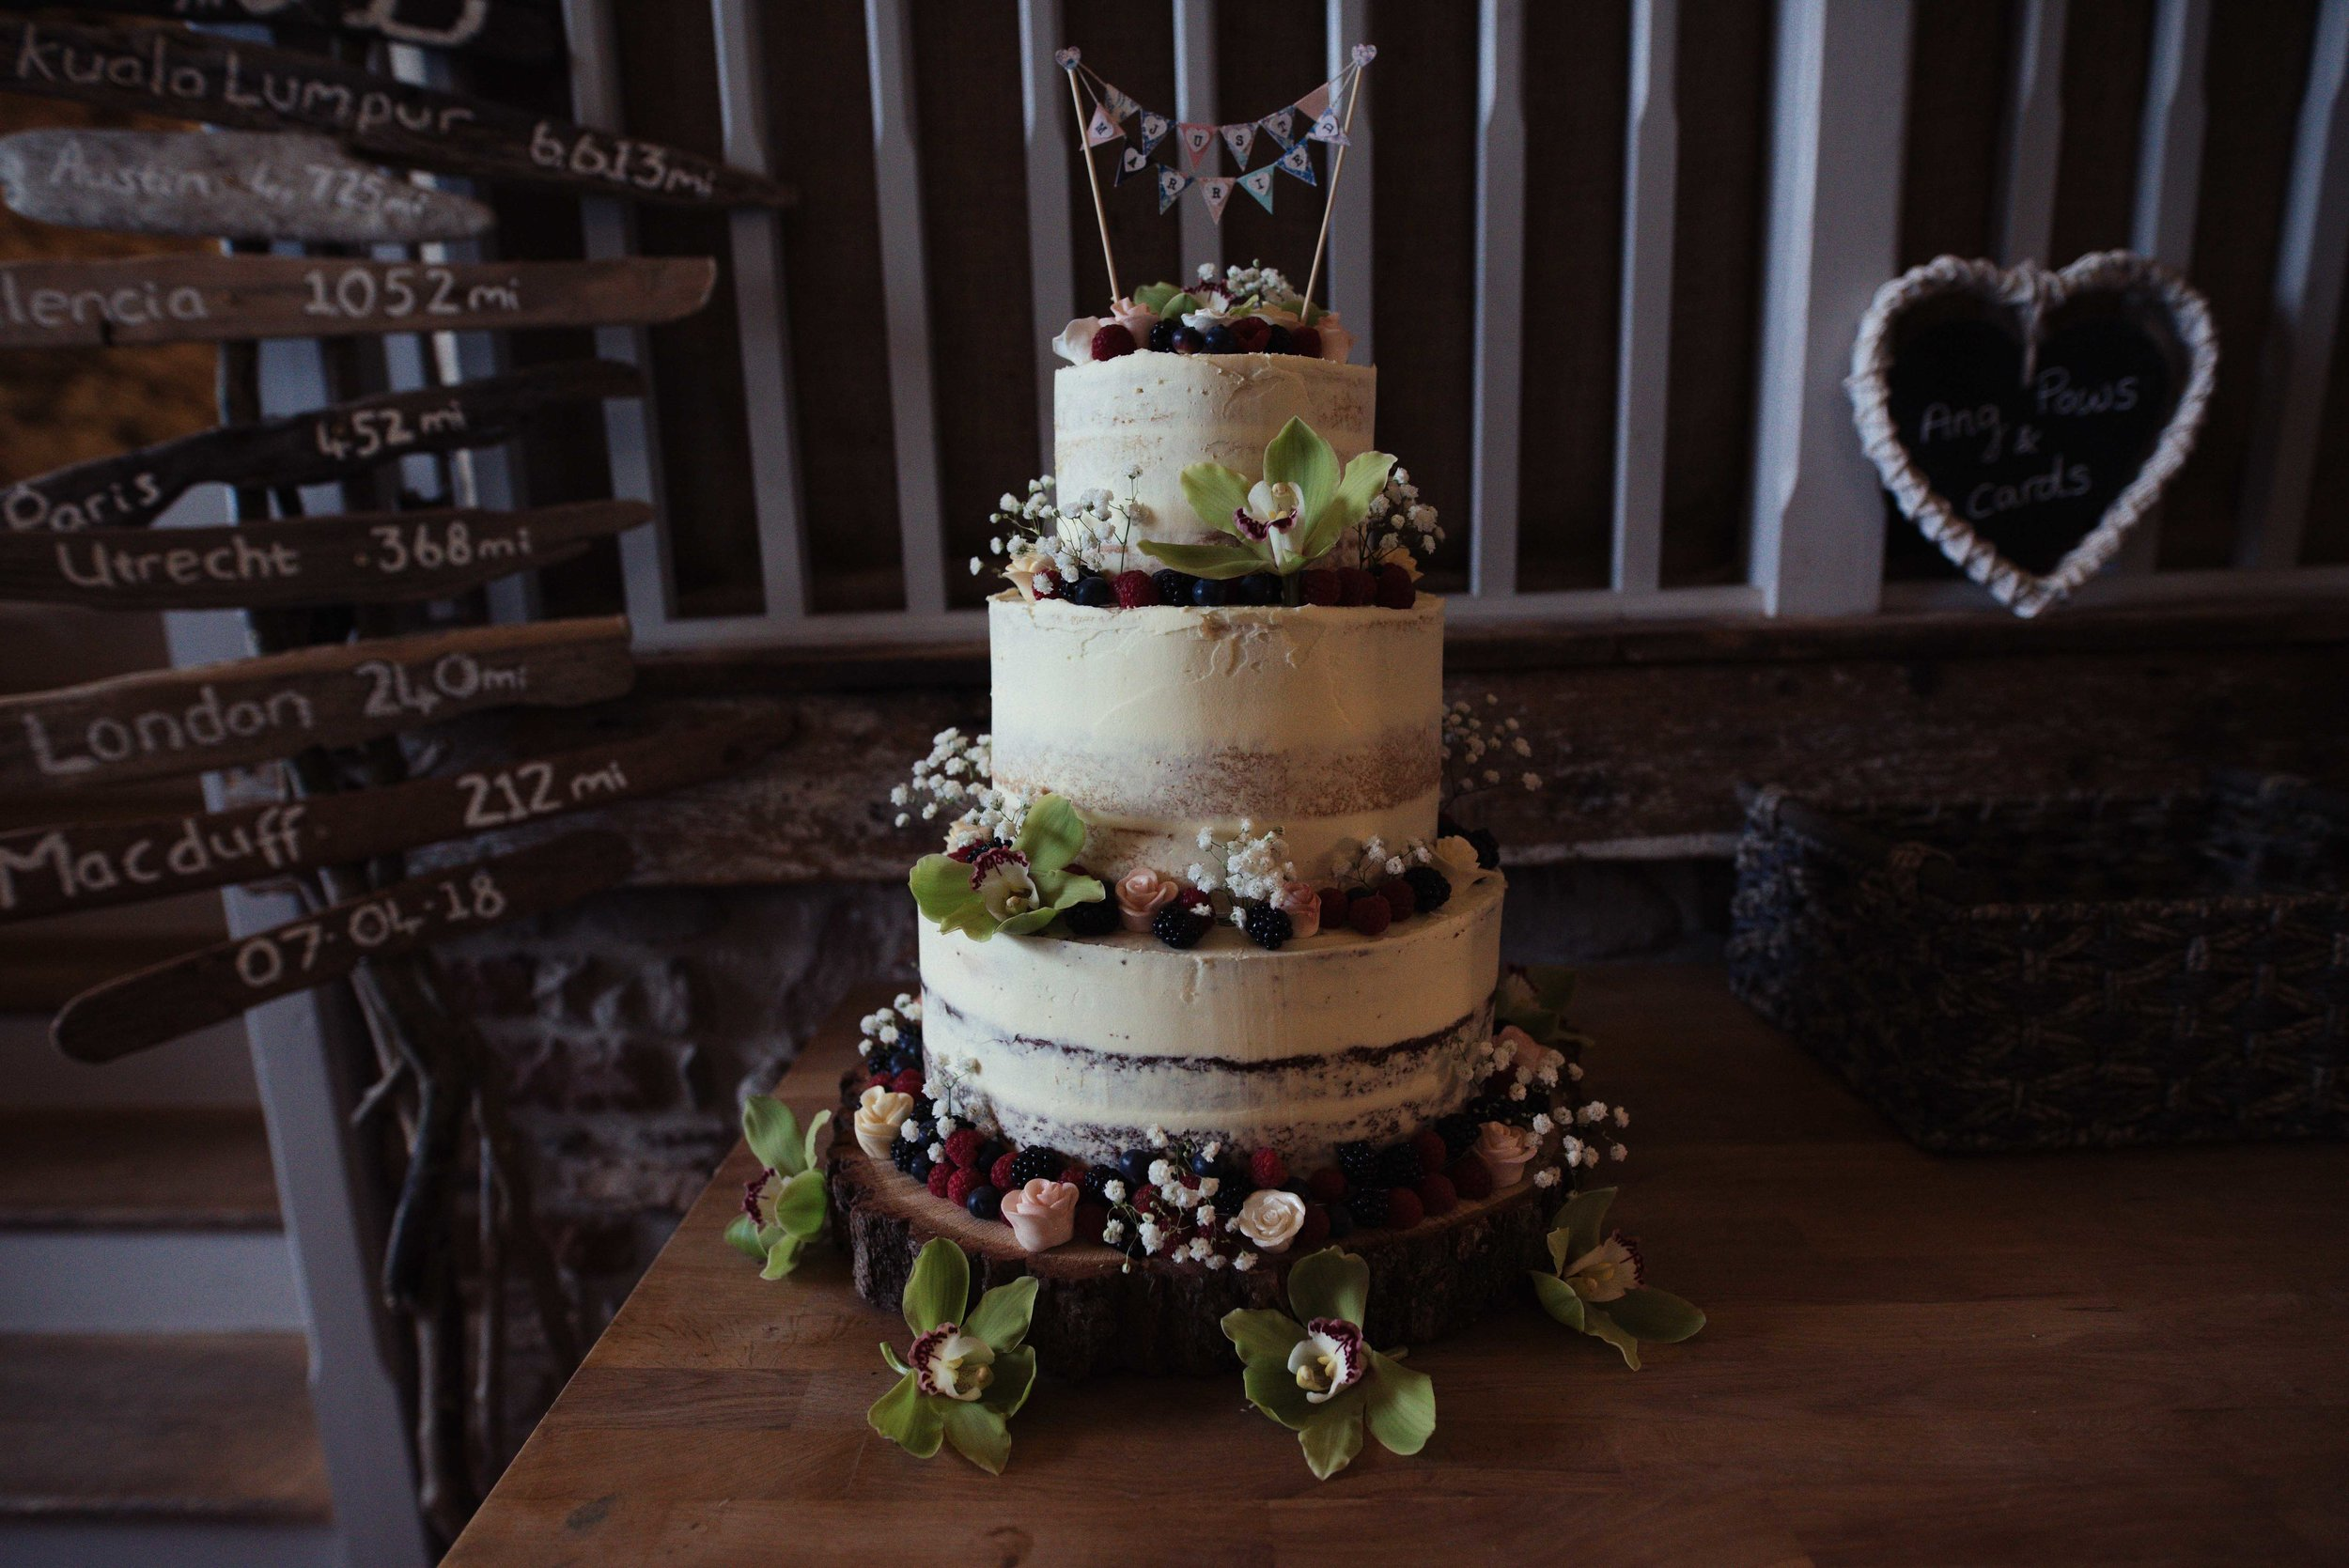 The bride and groom's naked wedding cake, dressed with berries and other fresh fruit